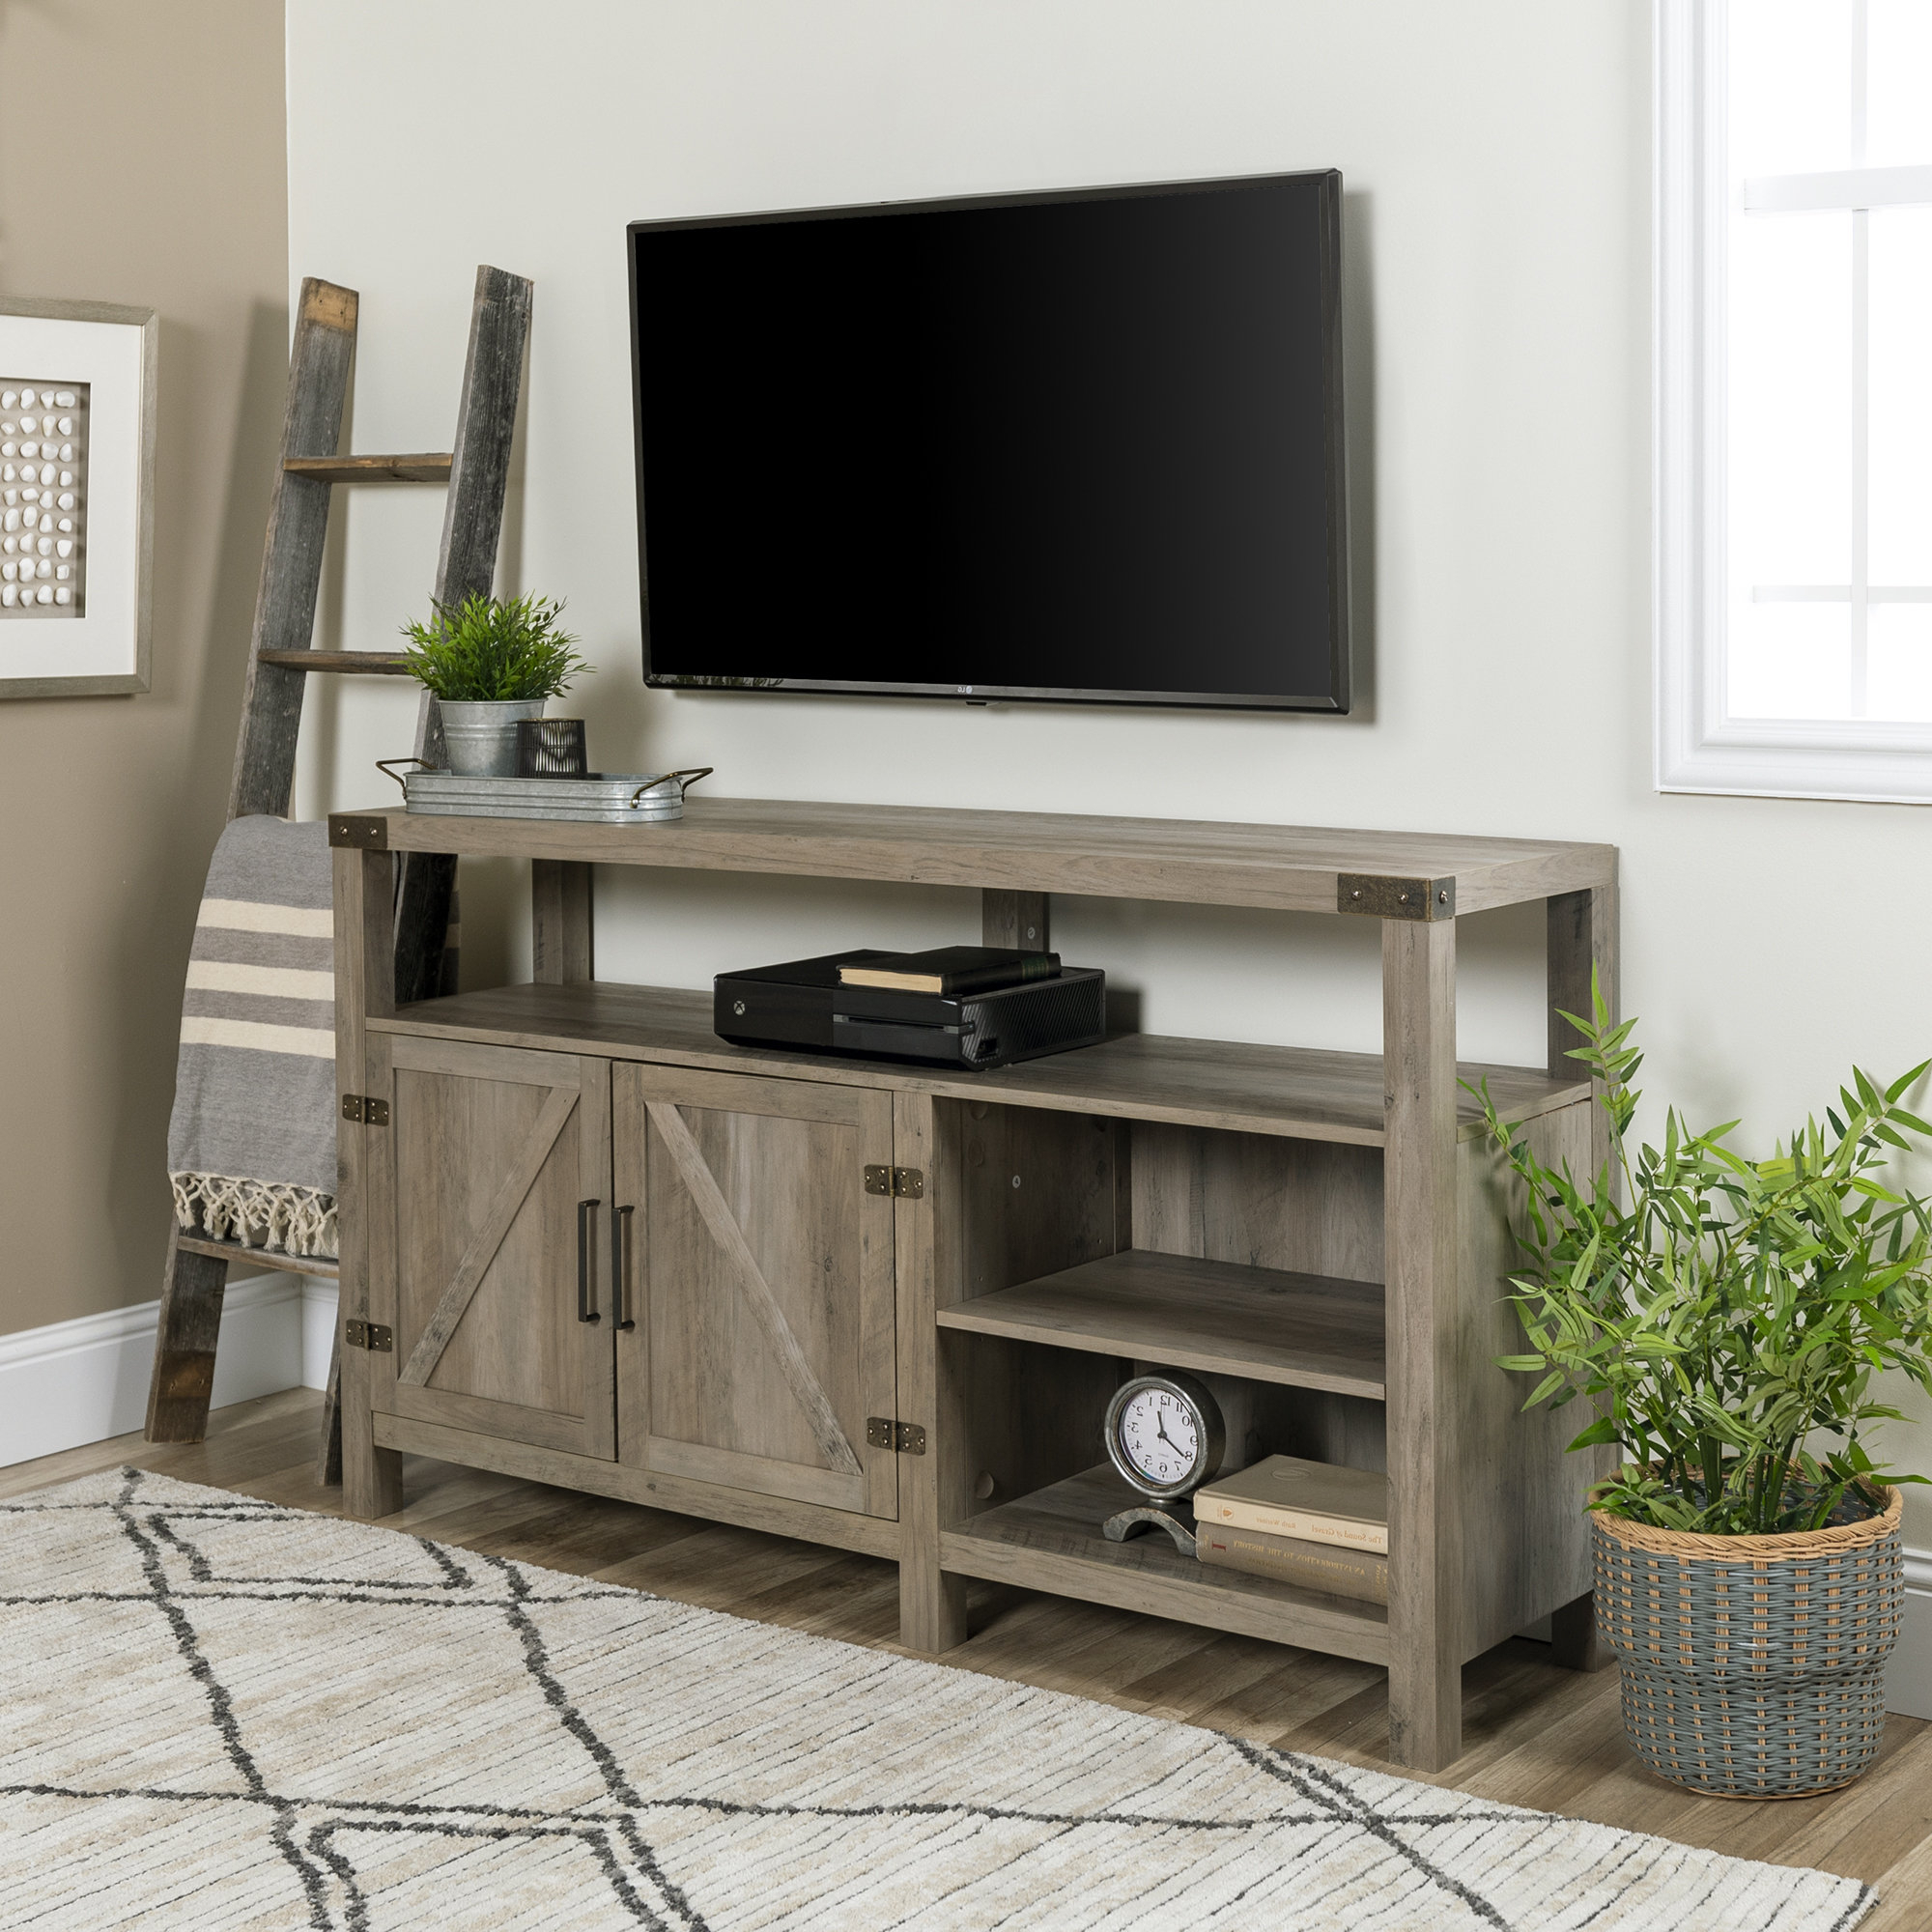 Wayfair With Widely Used Ducar 74 Inch Tv Stands (View 17 of 20)